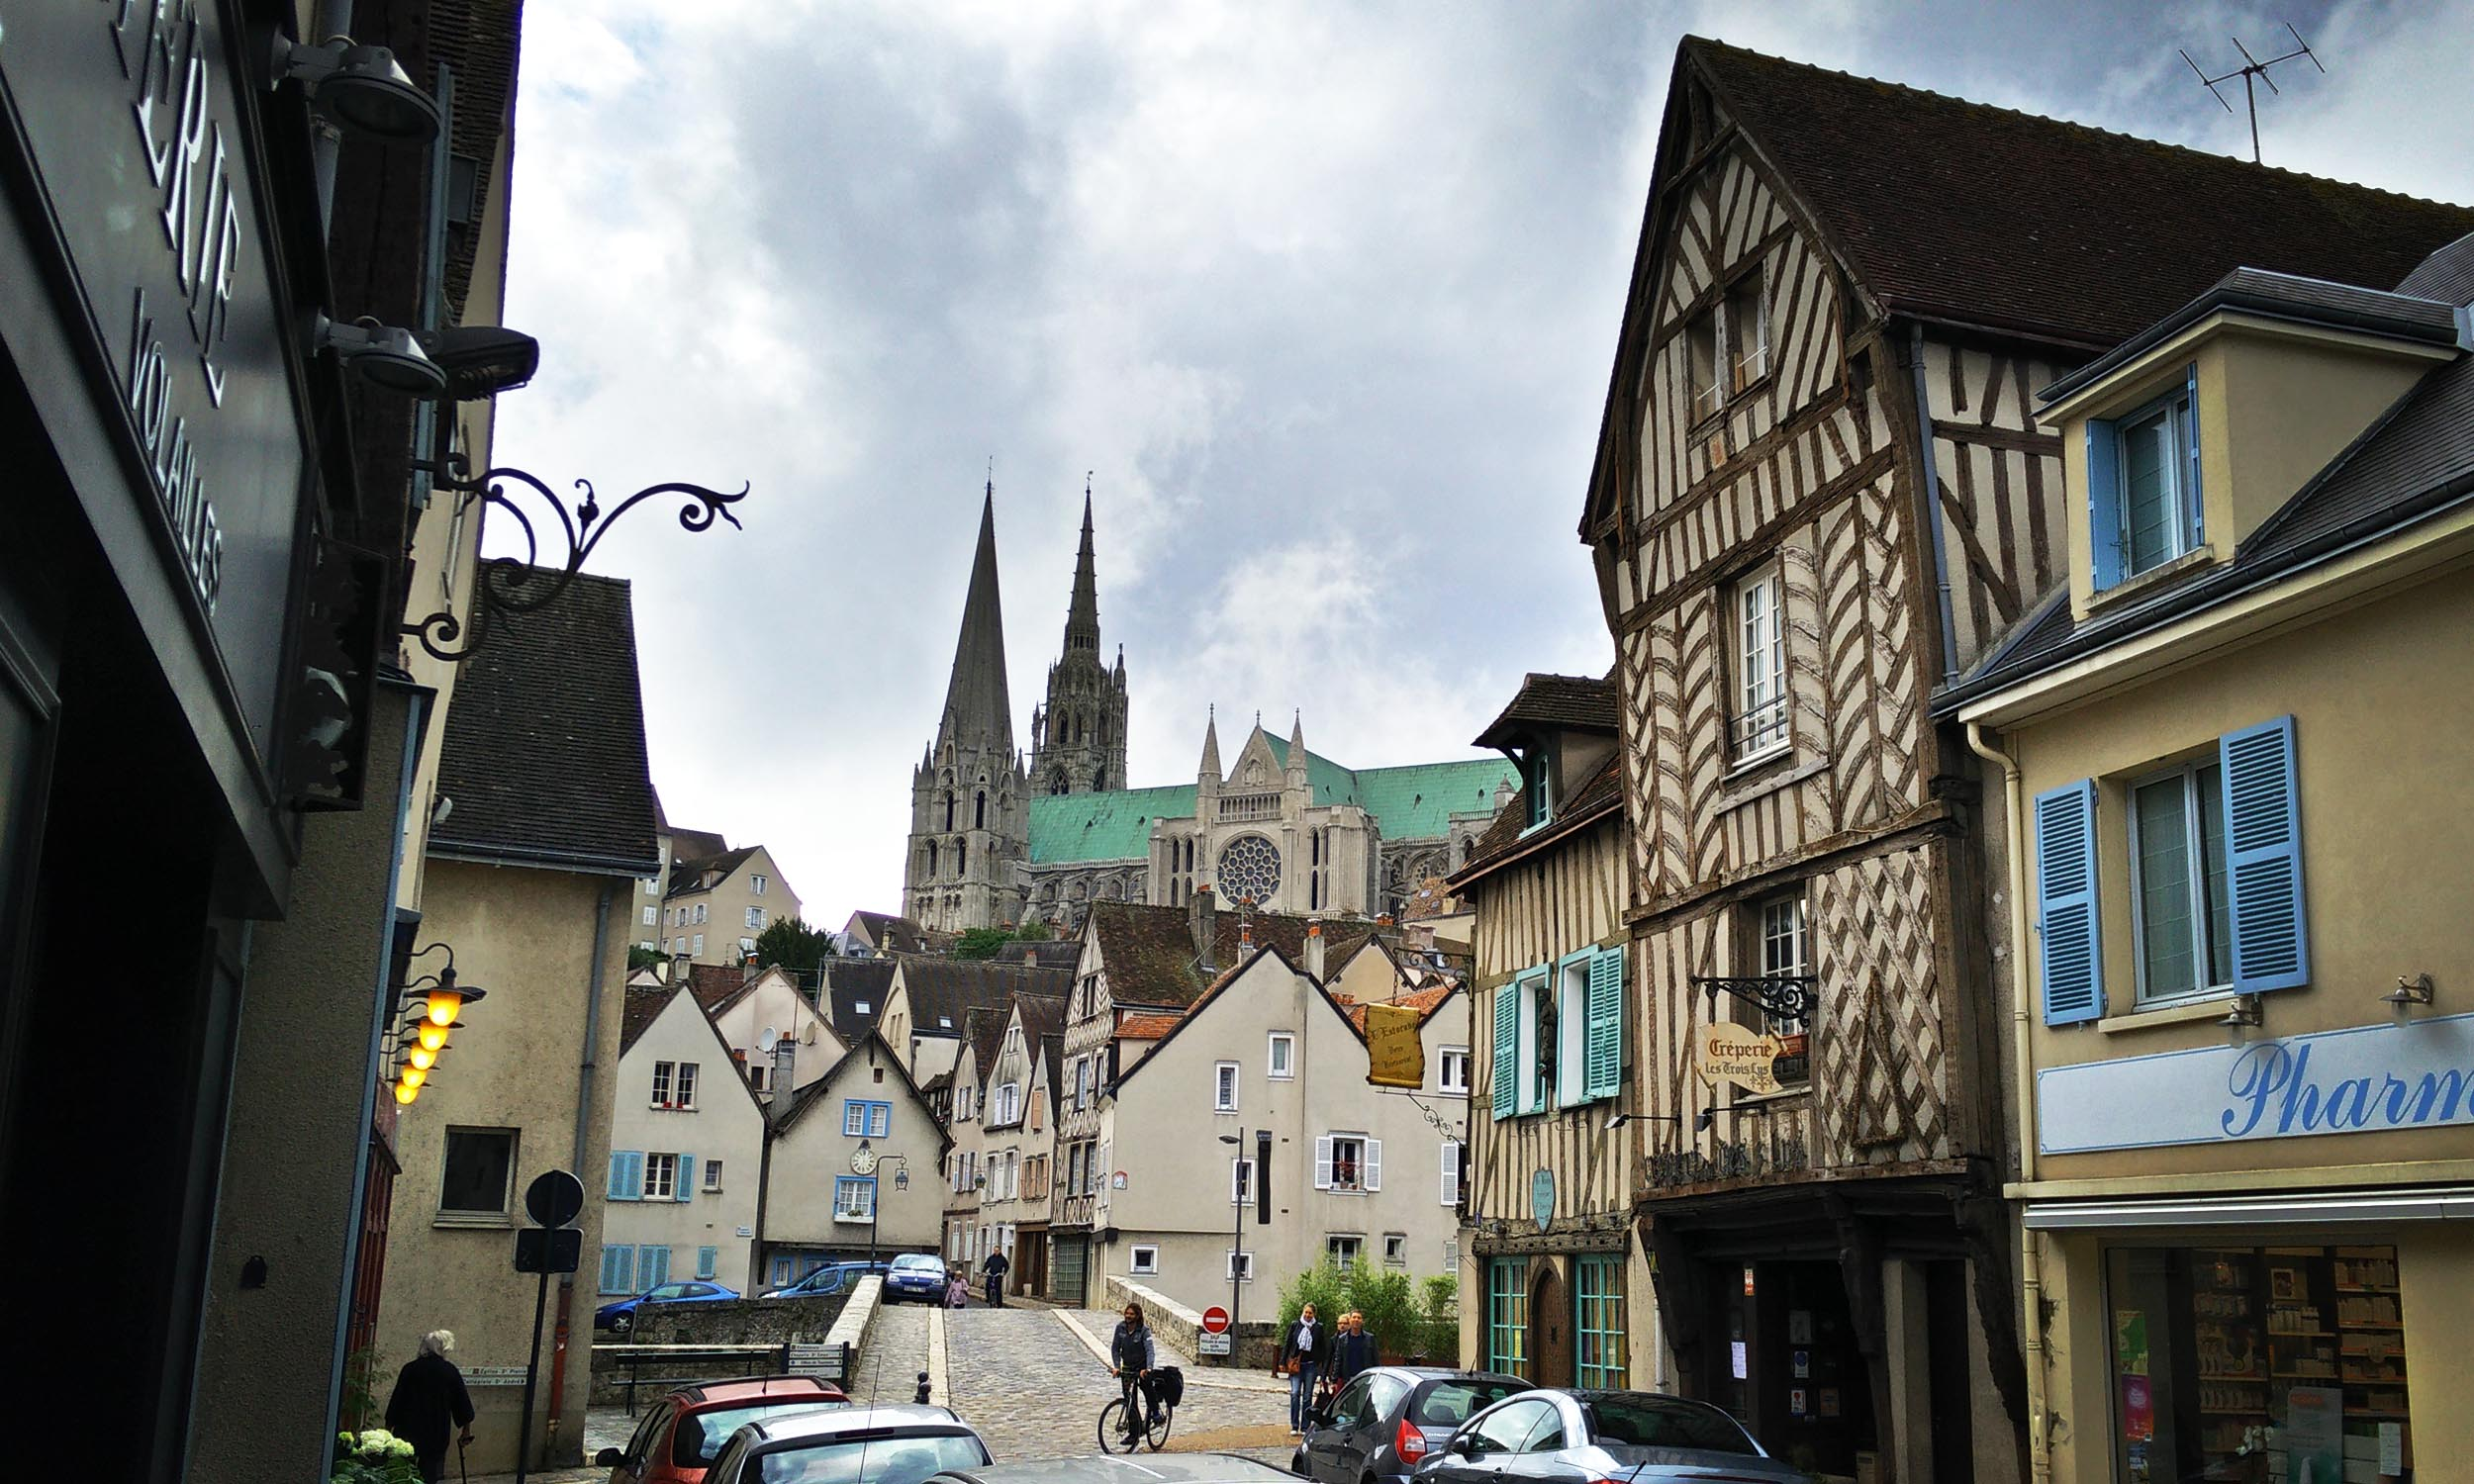 Chartres by day